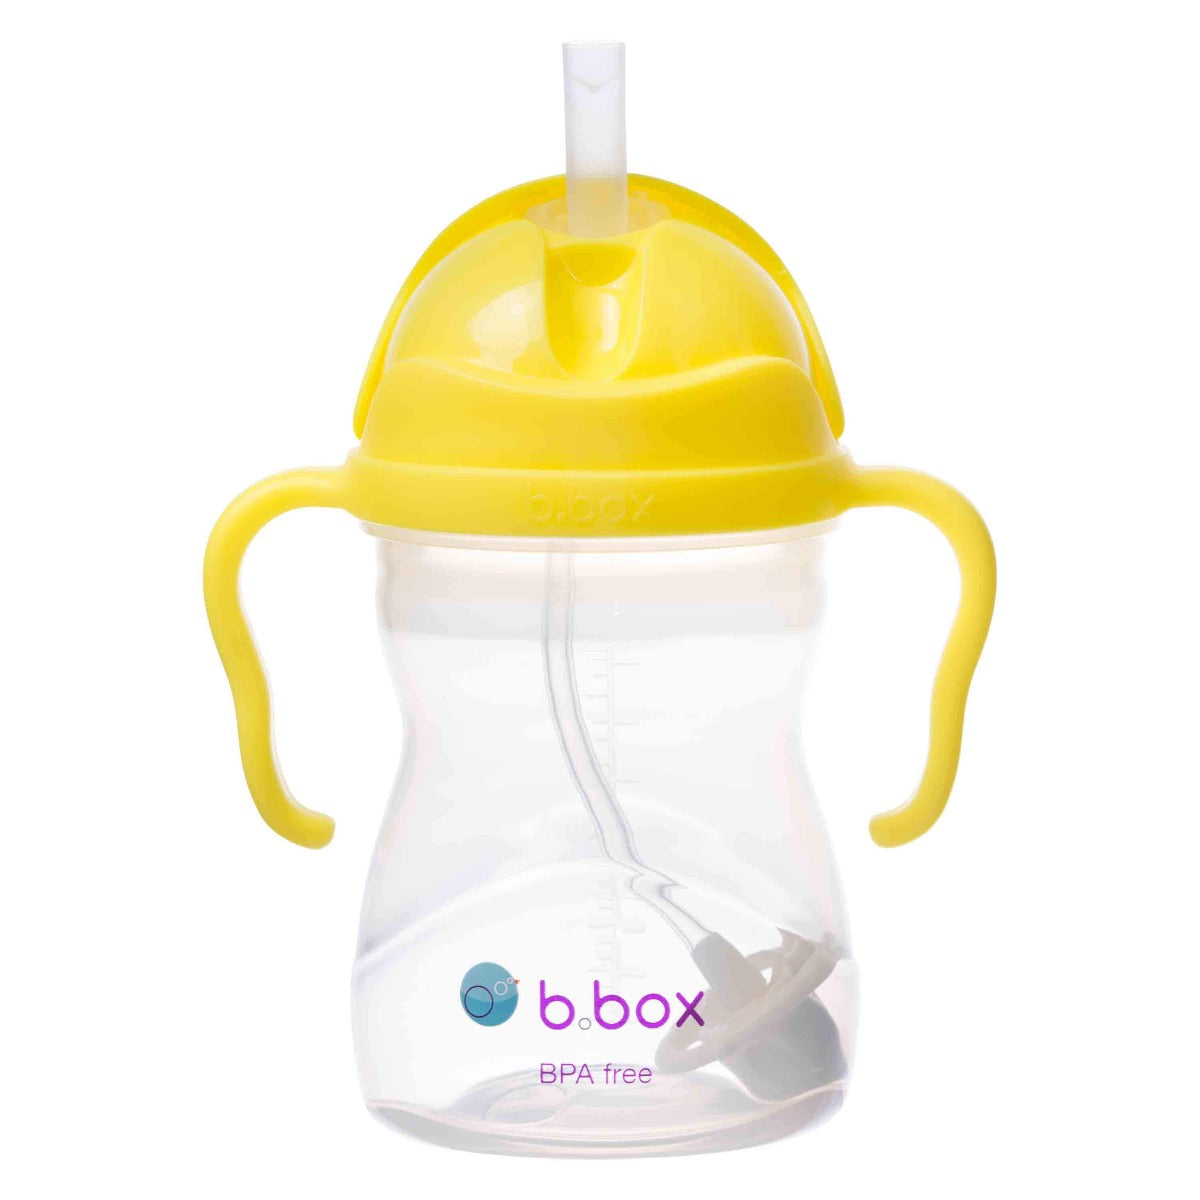 *b.box* sippy cup シッピーカップ - lemon - b.box Japan